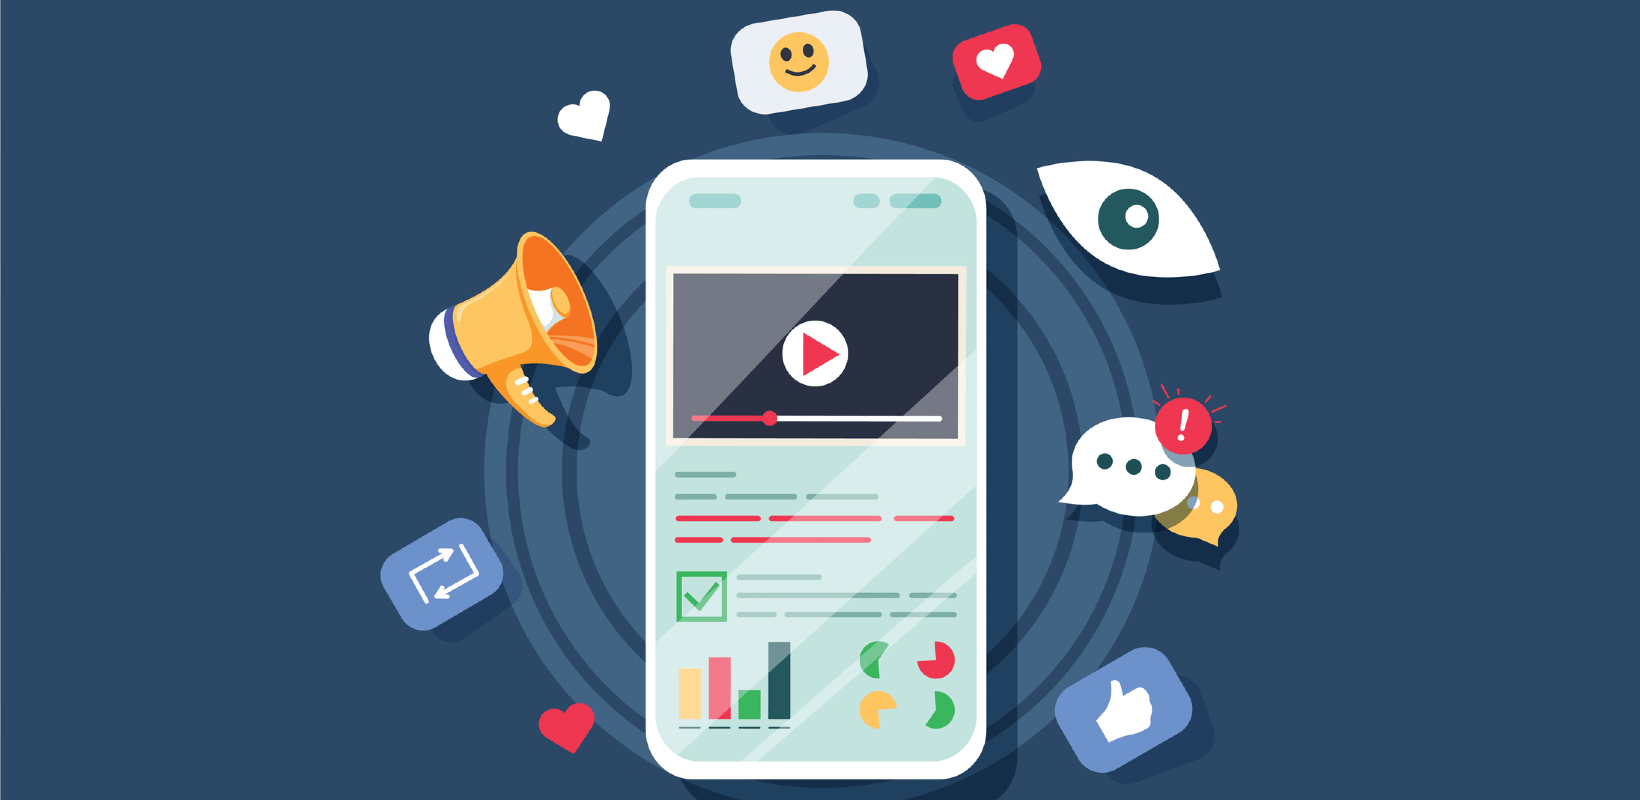 a cell phone surrounded by various icons like a chat bubble, a megaphone, and social media like graphics